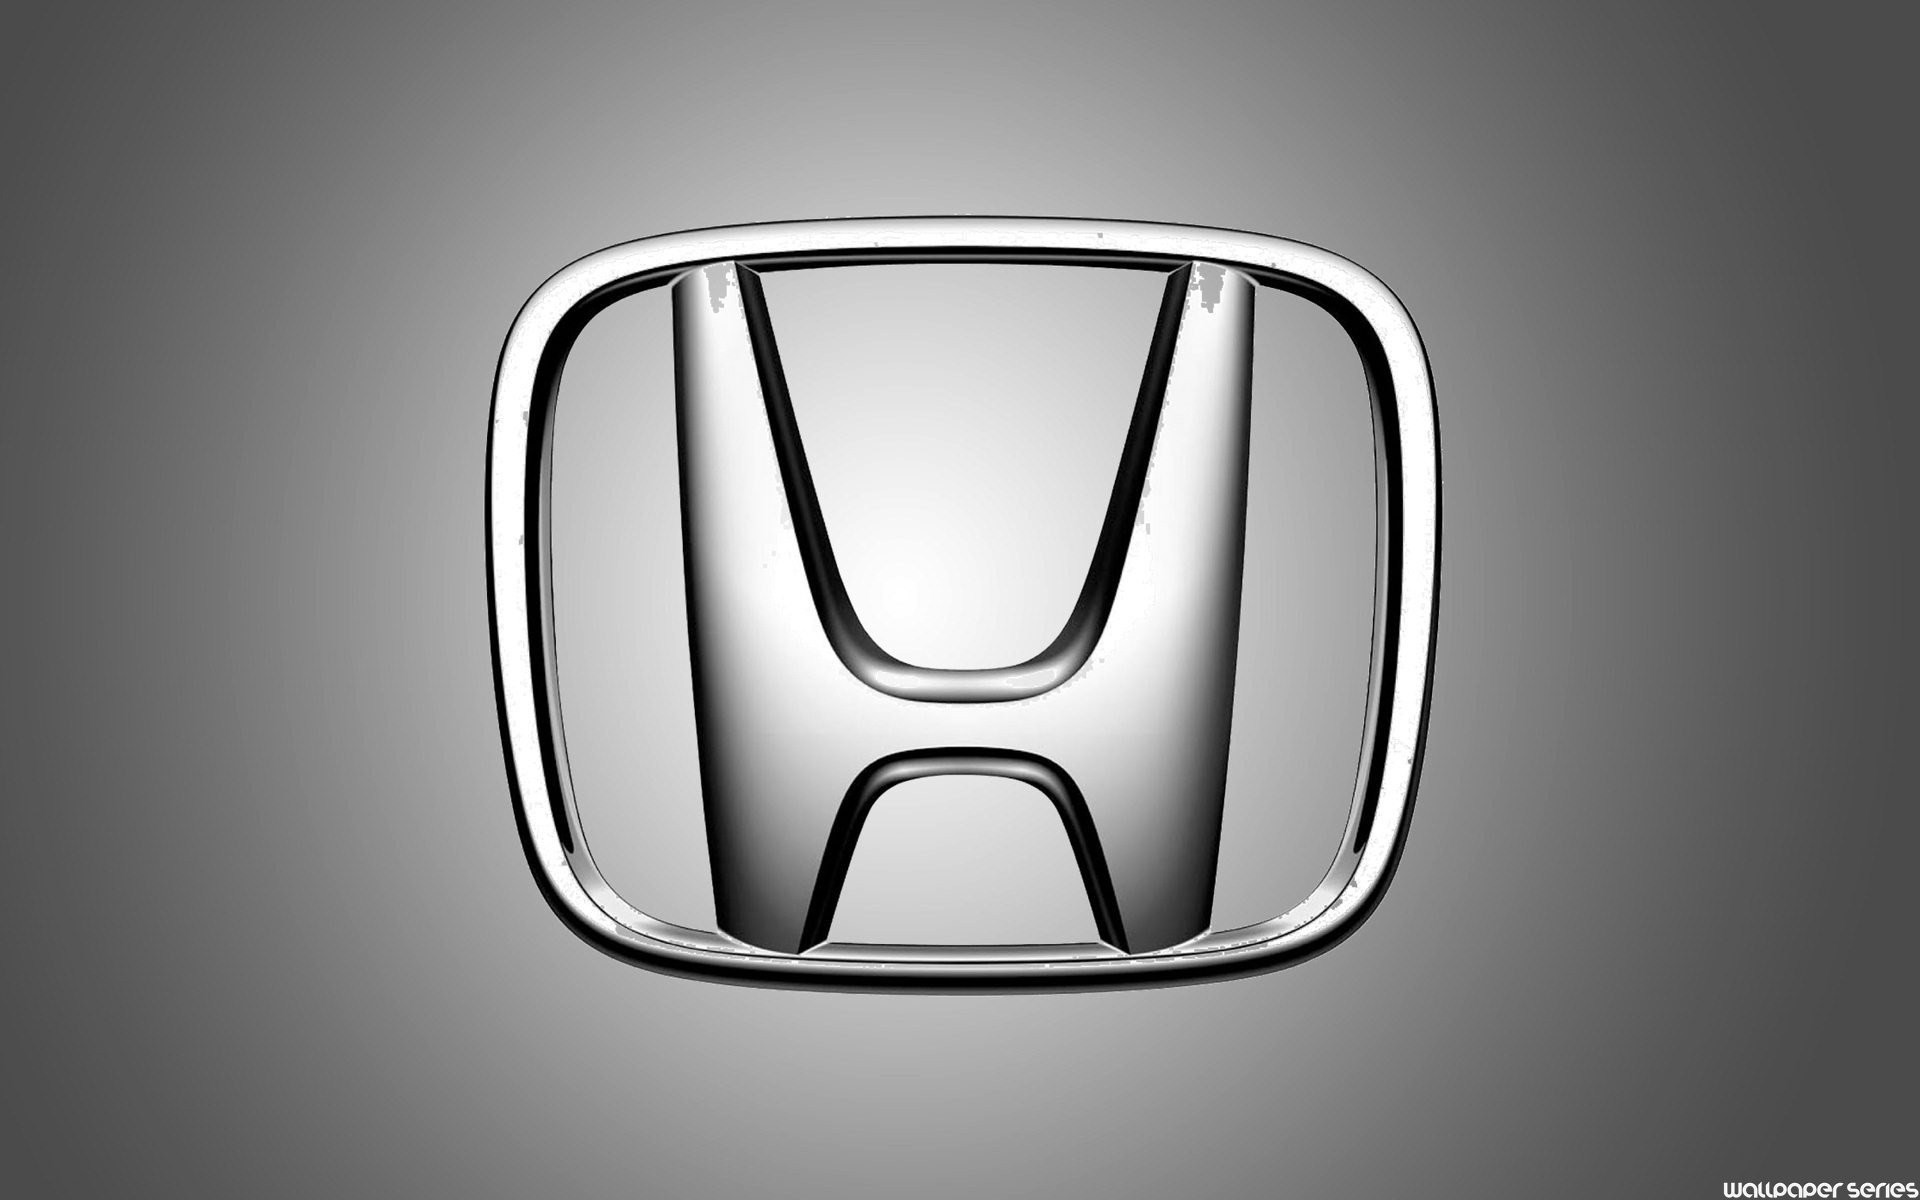 honda logo wallpaper hd